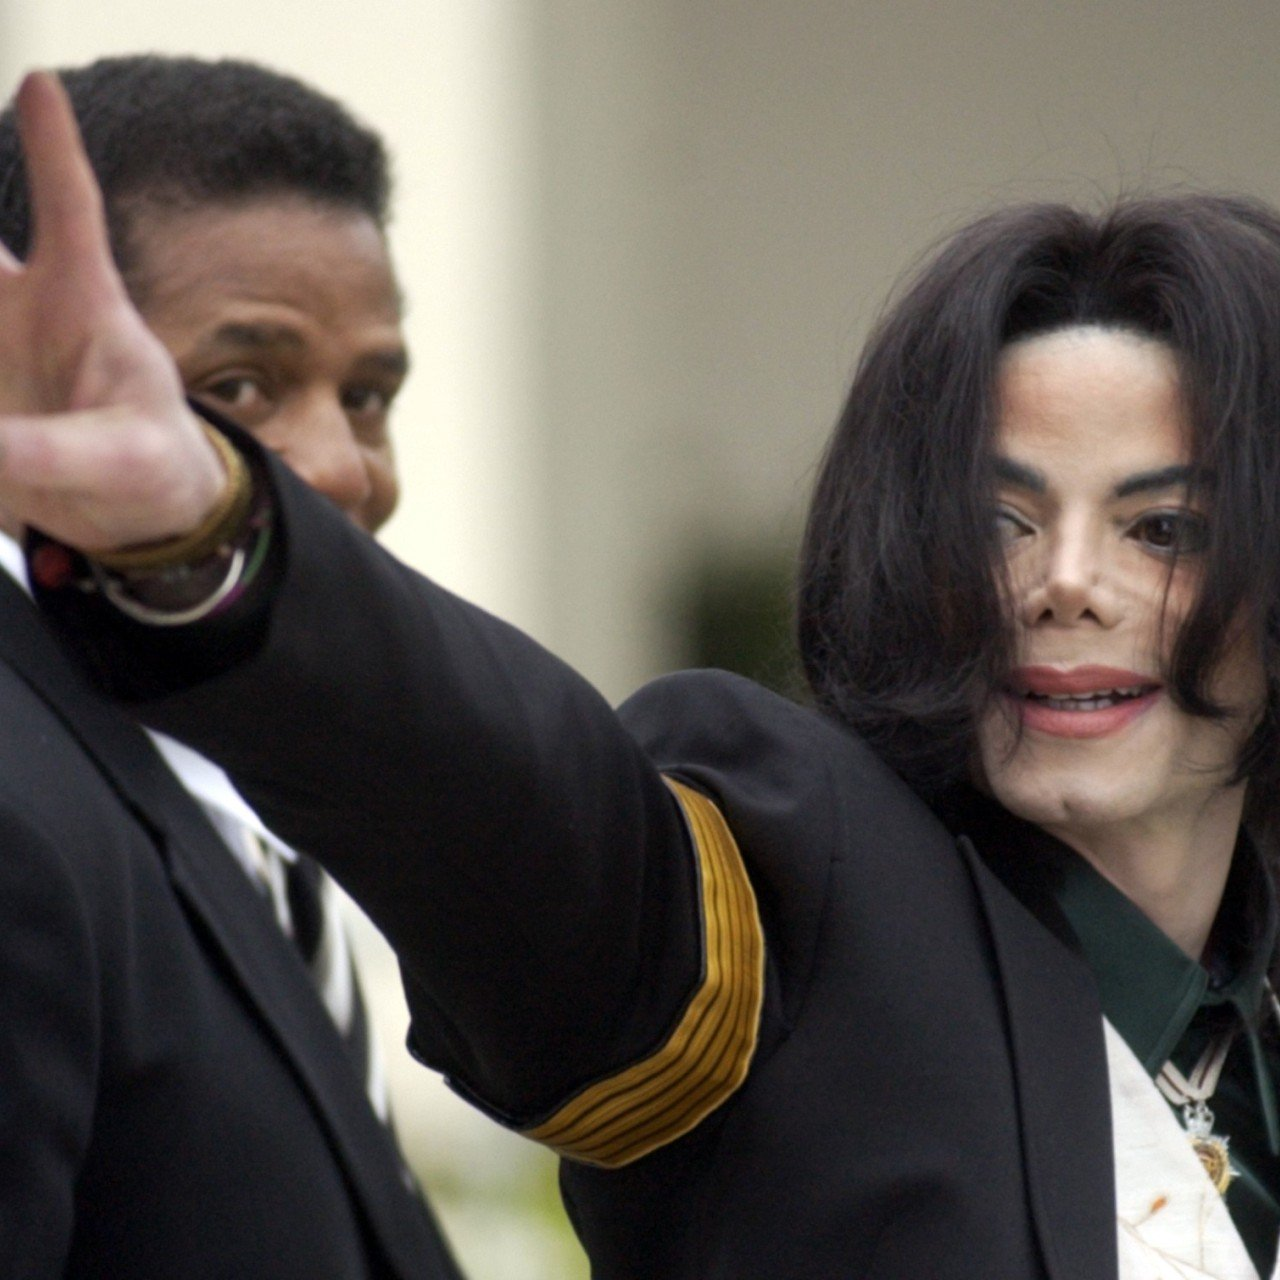 Family denounces Michael Jackson sex abuse film as one-sided ahead